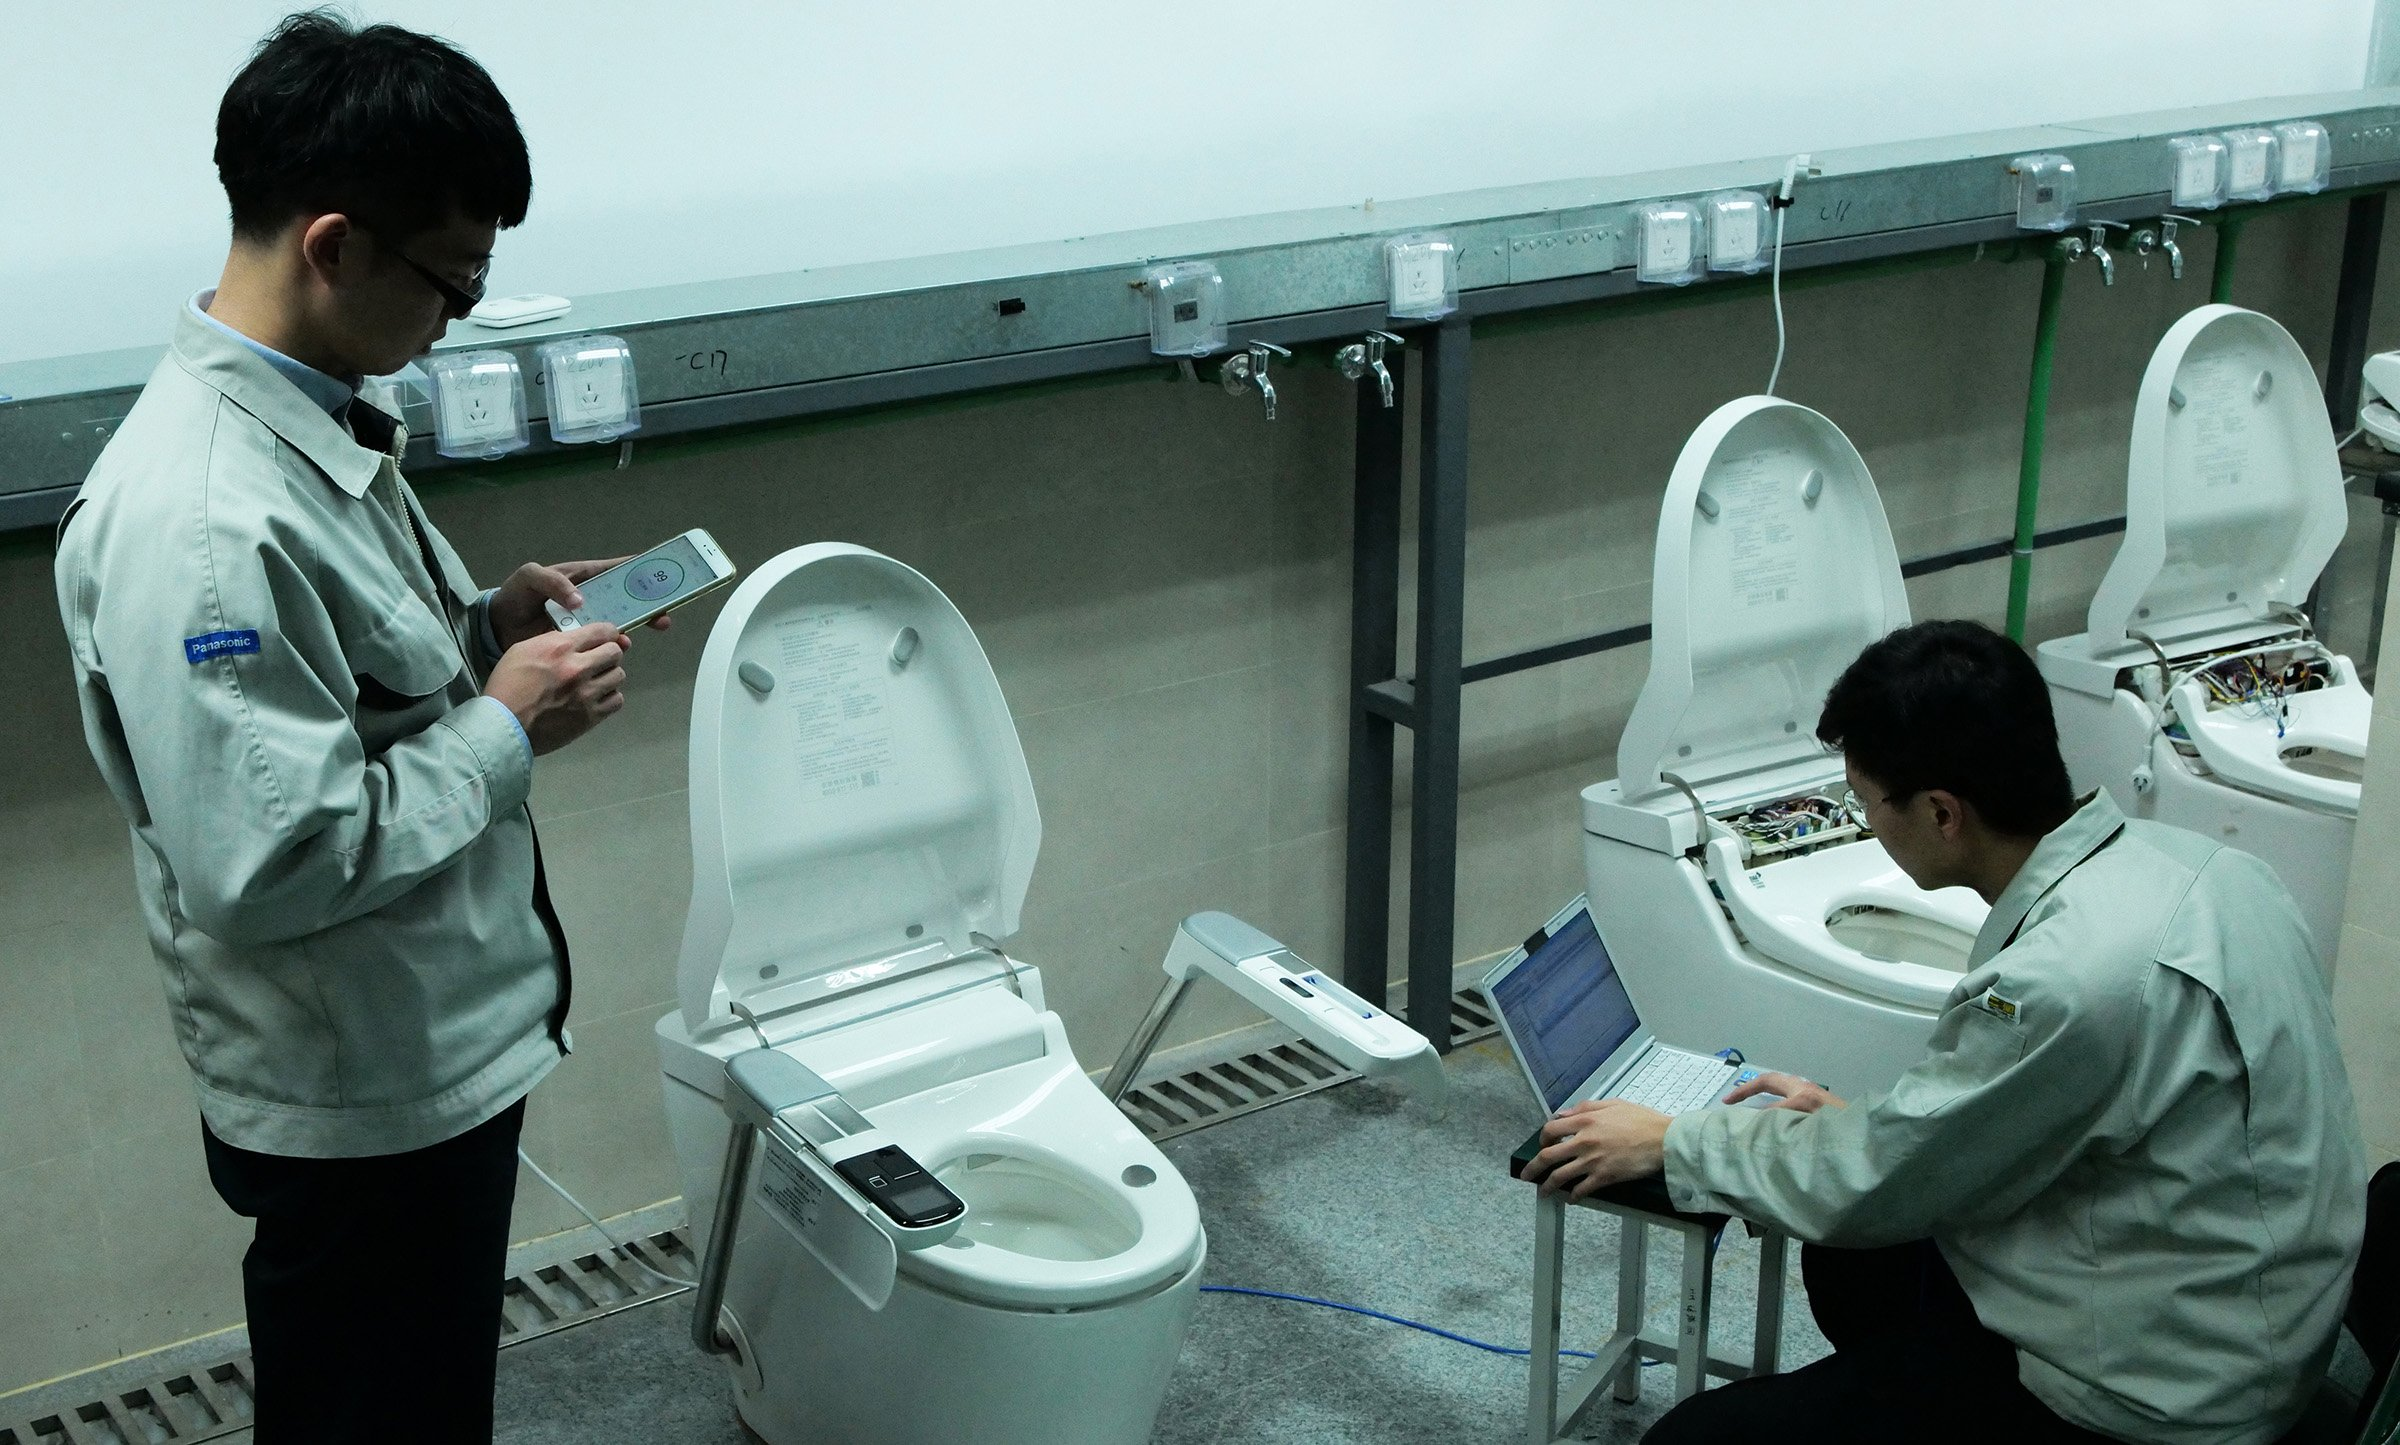 Photo: Engineers testing the connectivity with smartphones.